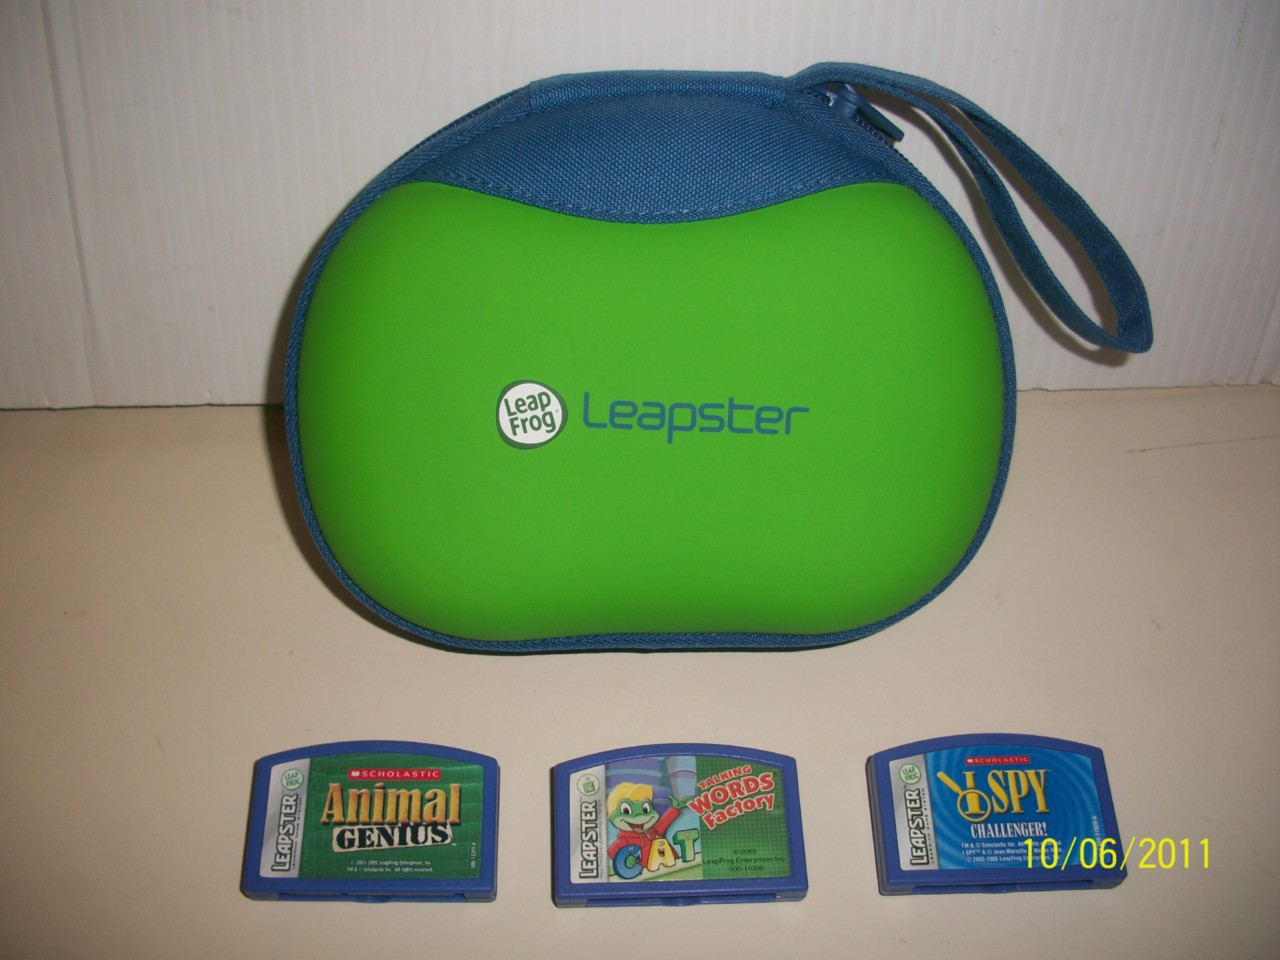 Buy LeapFrog Leapster 2 Learning Game System - Green: Kids' Electronics - deviatemonth.ml FREE DELIVERY possible on eligible purchases.